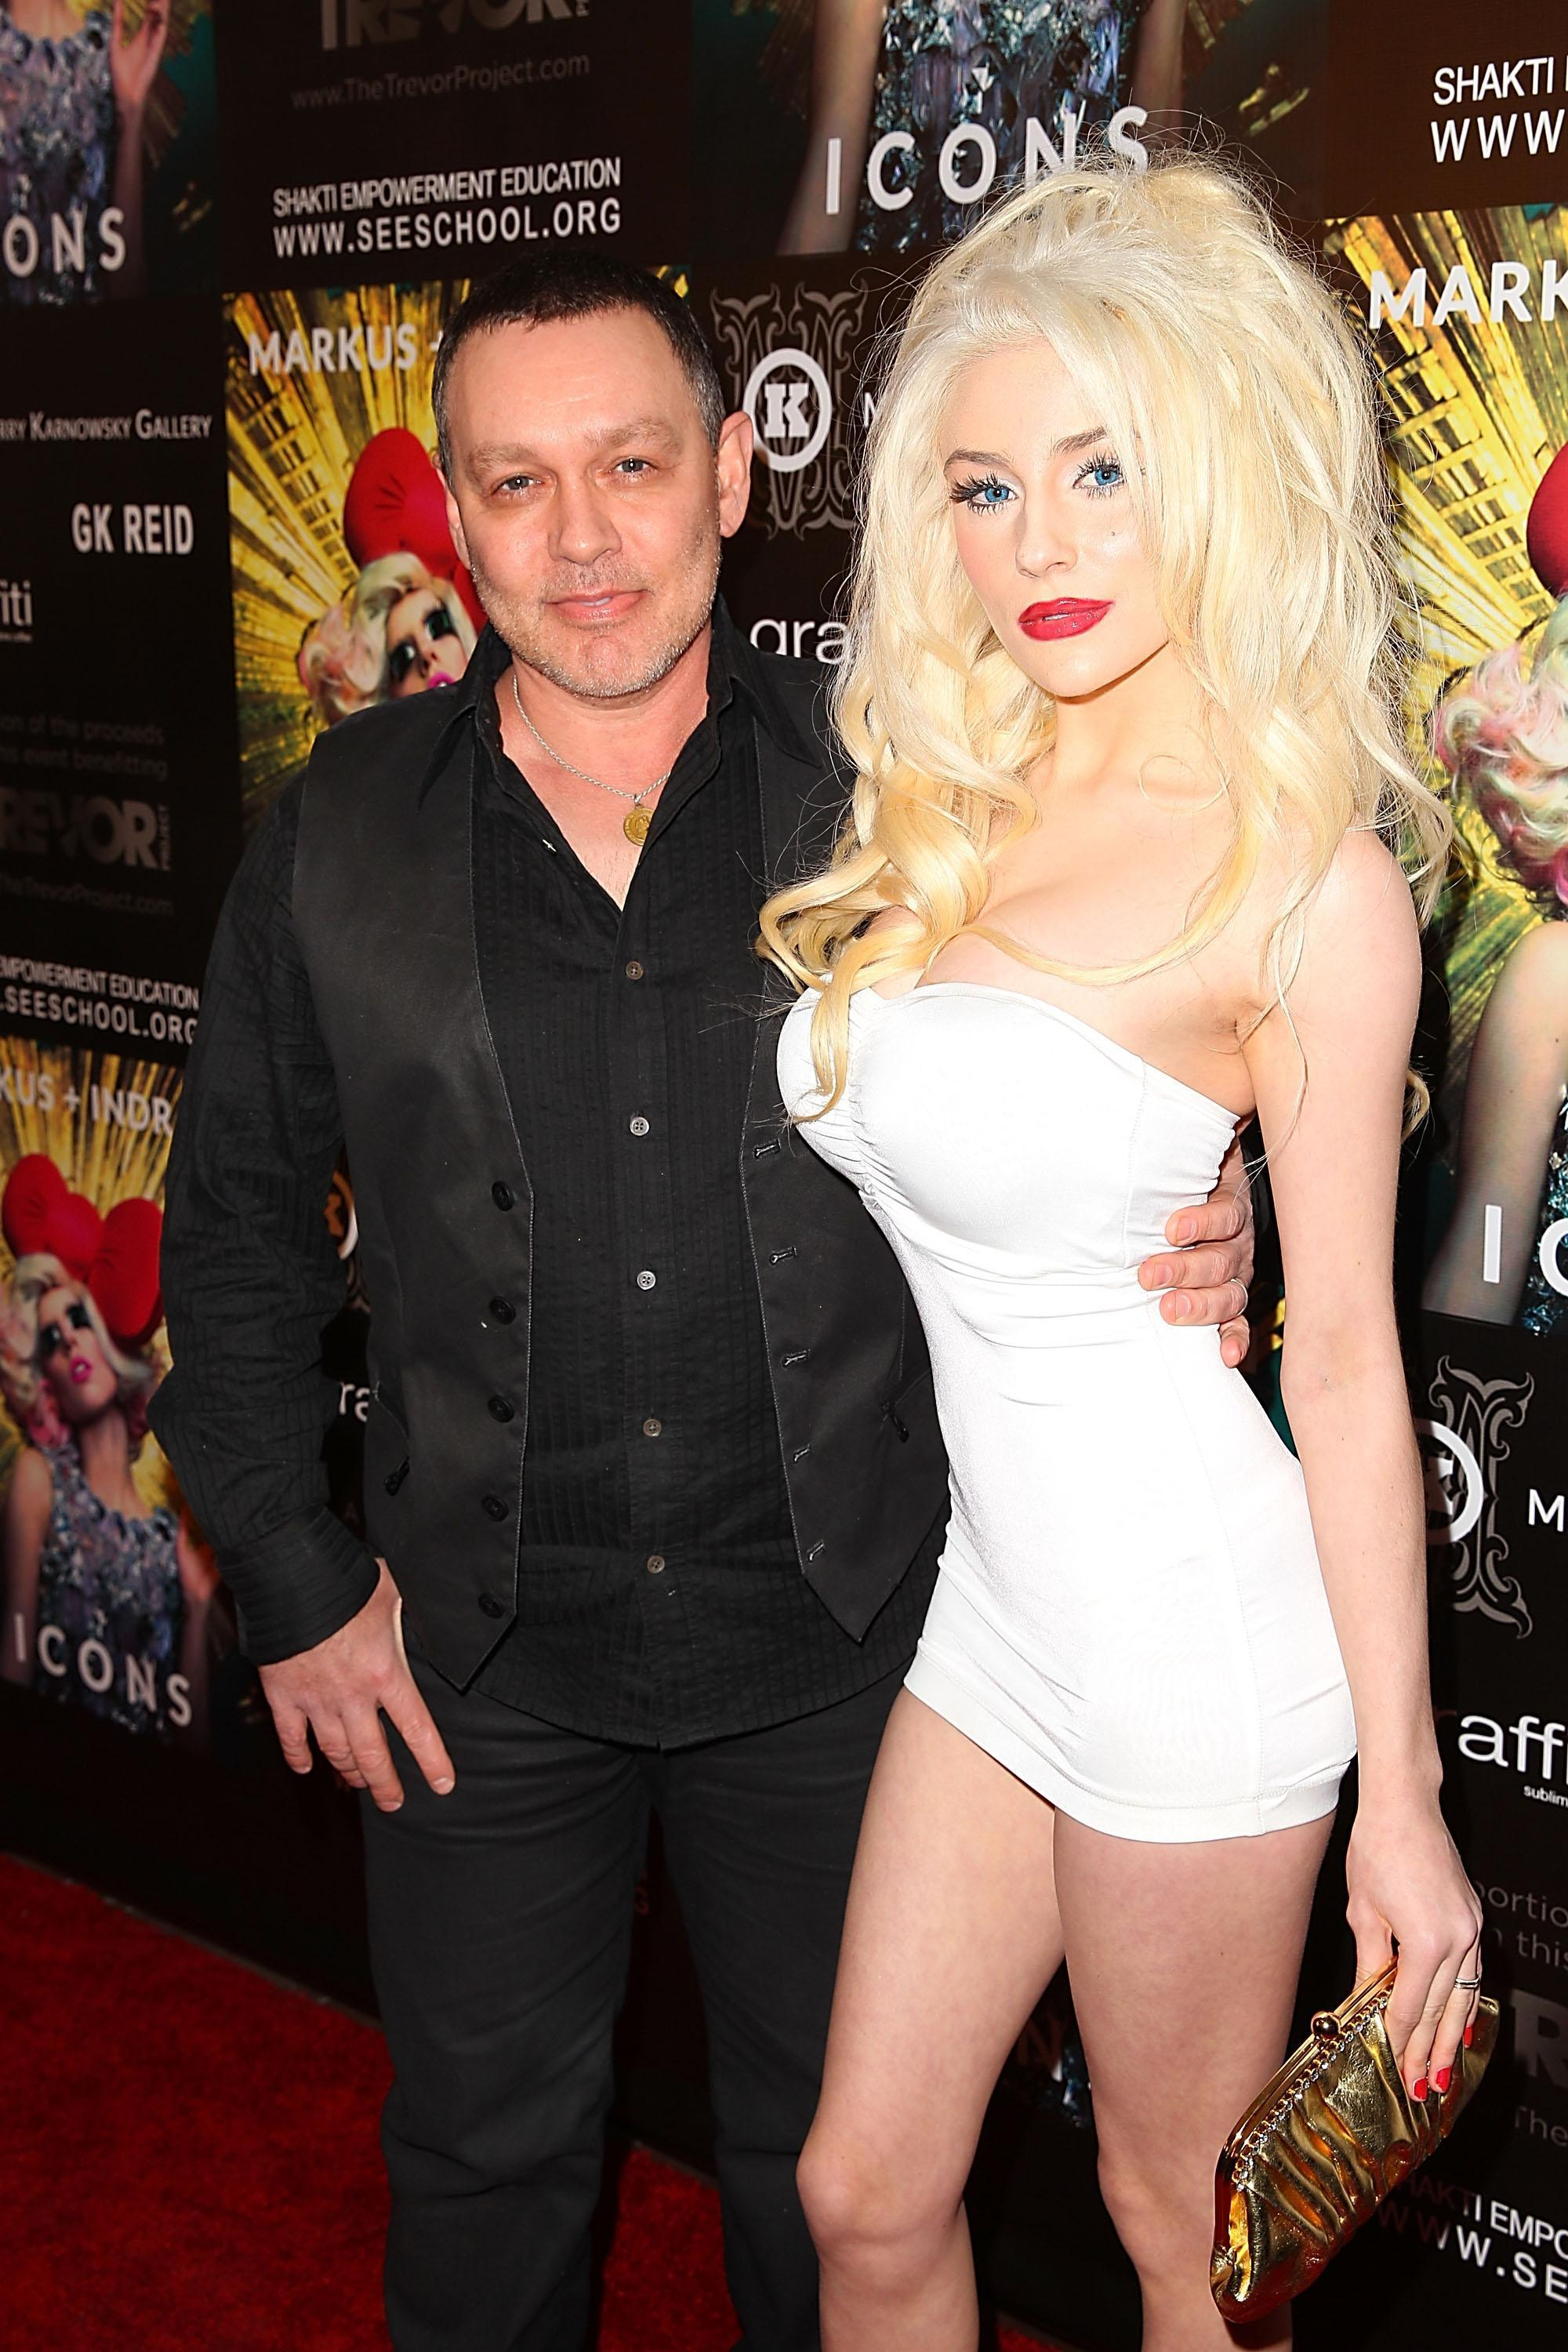 Courtney Stodden, 23, finally files for divorce from 57 year old Doug Hutchinson one year after announcing split